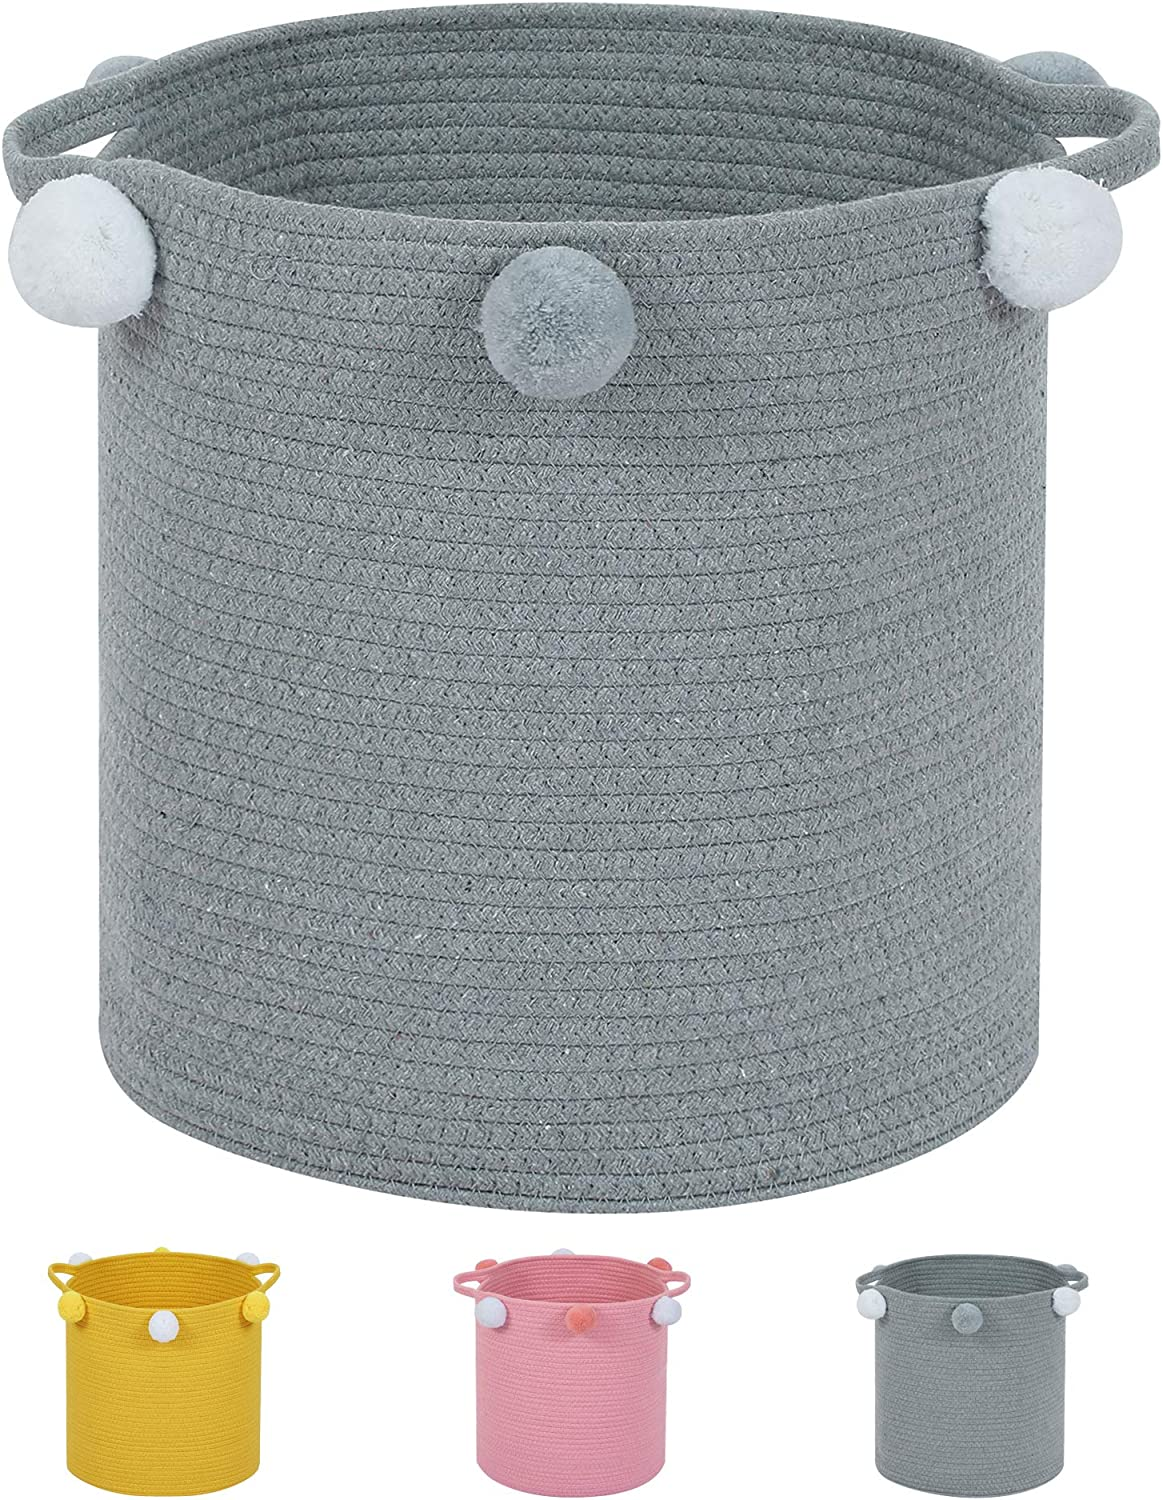 Enzk&Unity Woven Laundry Hamper Cotton Rope Basket with Decorative Coiled Basket with Pompoms for Kids Toys,Blankets, Nursery, Bedroom, Grey